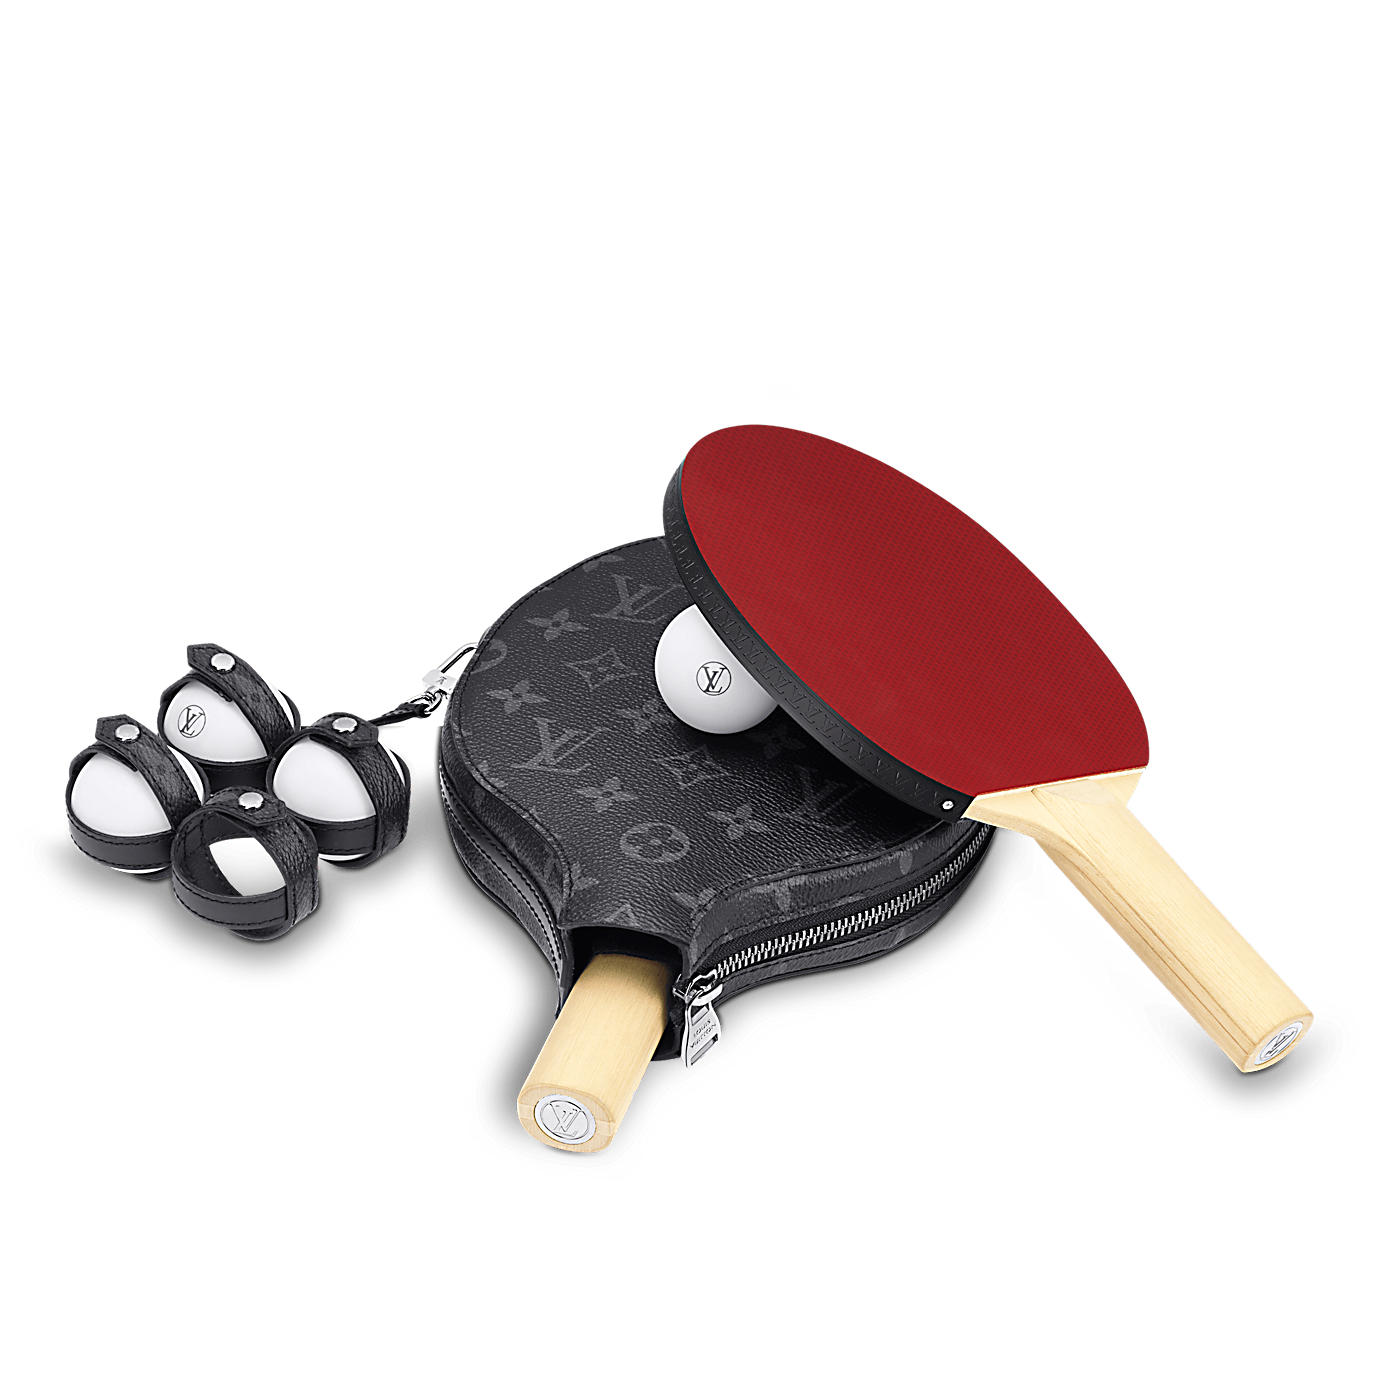 louis-vuitton-ping-pong-set-james-monogram-eclipse-canvas-home-decor--GI0202_PM1_Other view.jpg